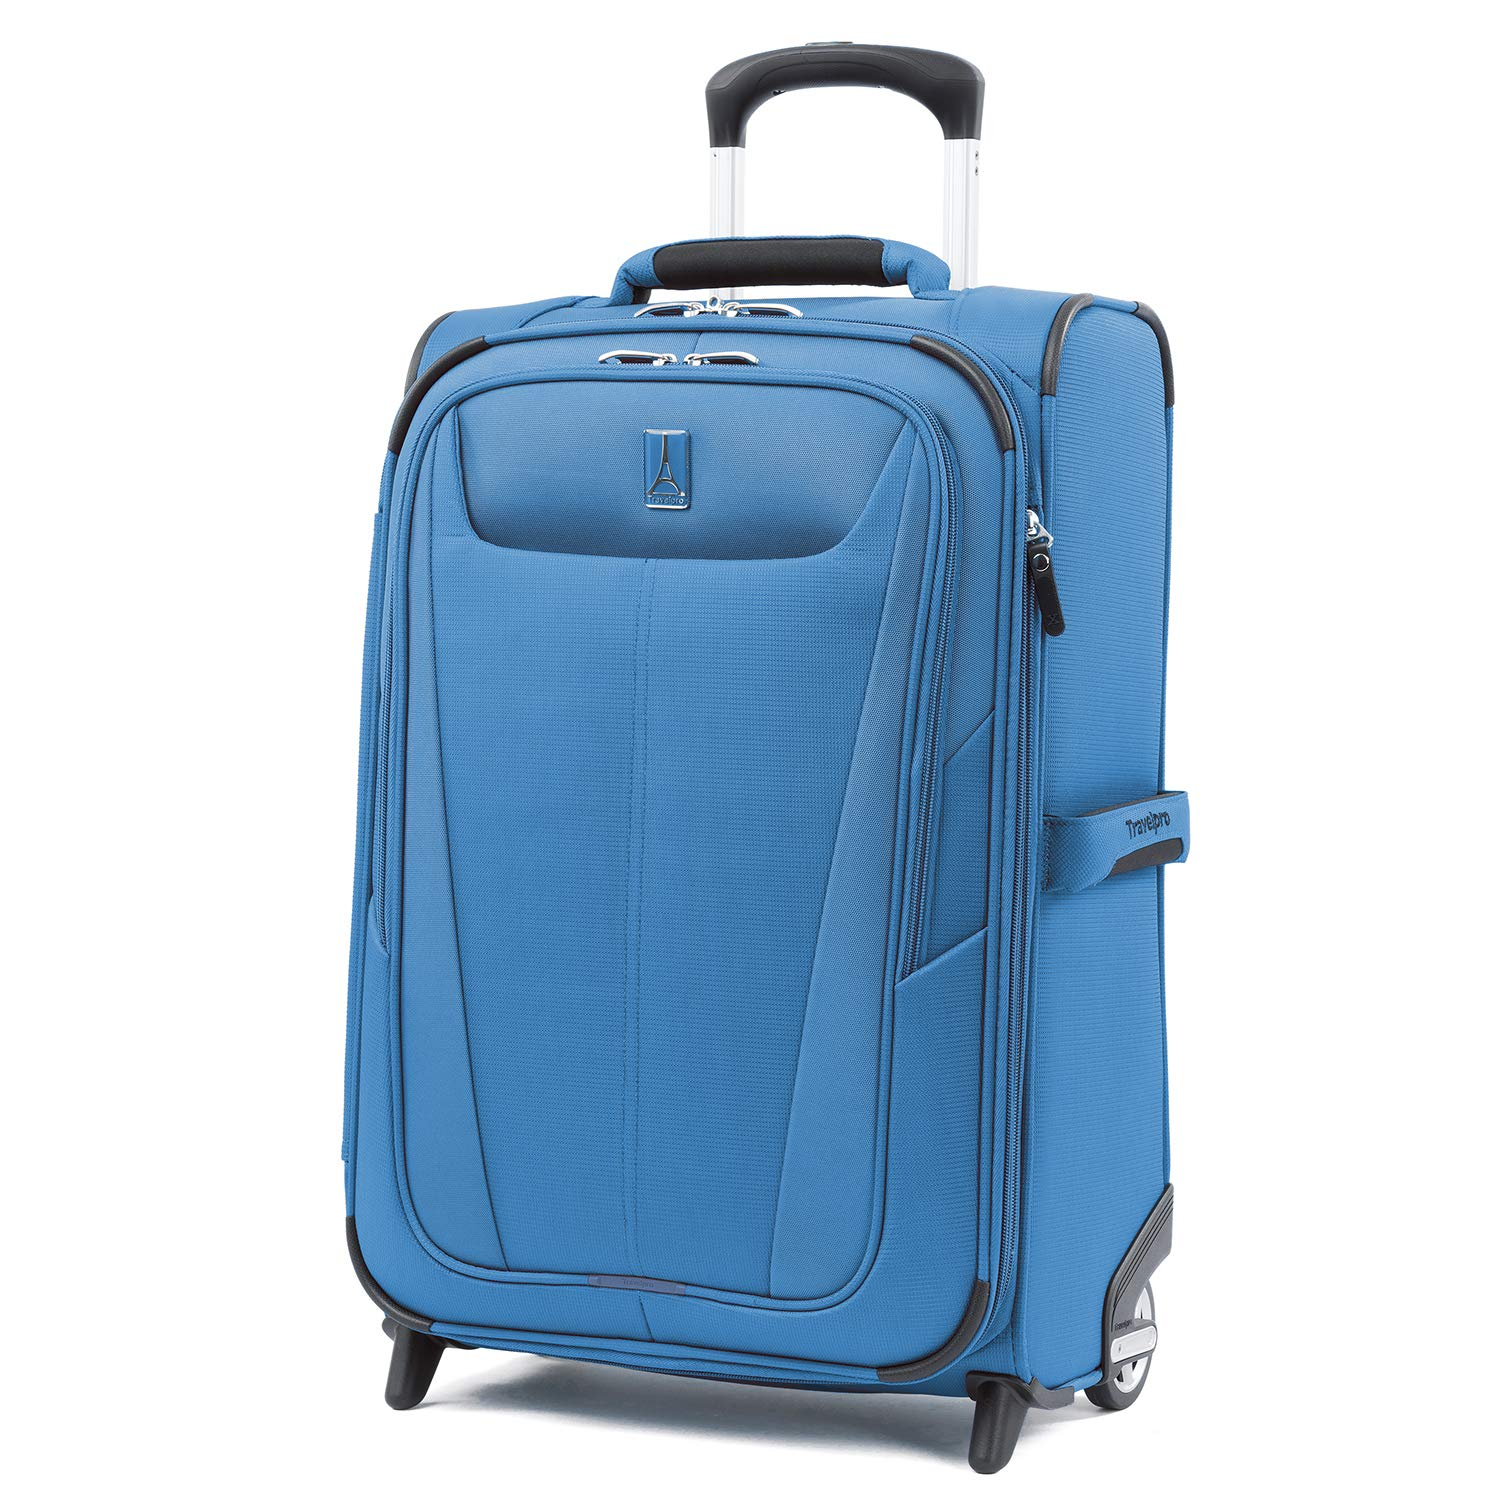 Travelpro Luggage Maxlite 5 22'' Lightweight Expandable Carry-on Rollaboard Suitcase, Azure Blue